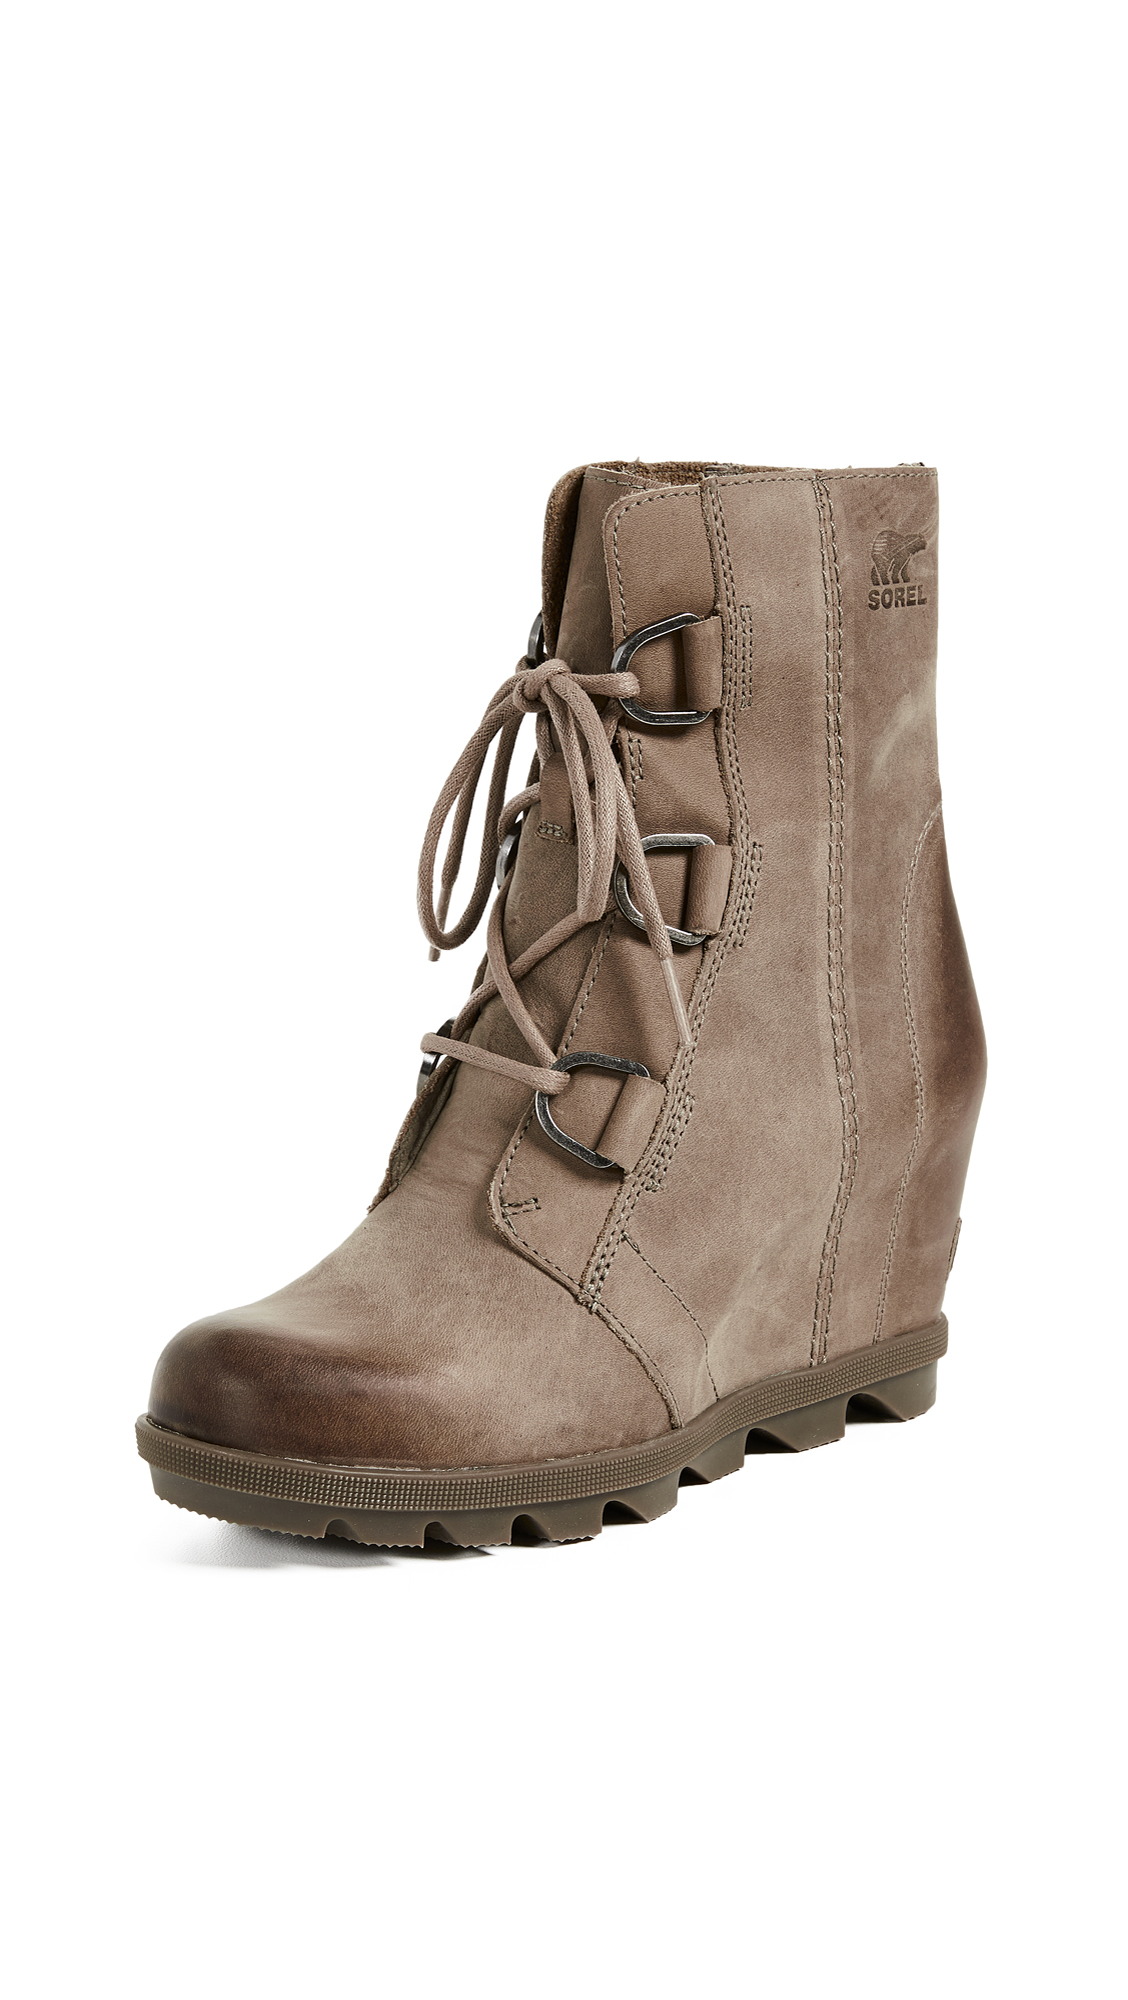 Sorel Joan of Arctic Wedge II Boots - Ash Brown